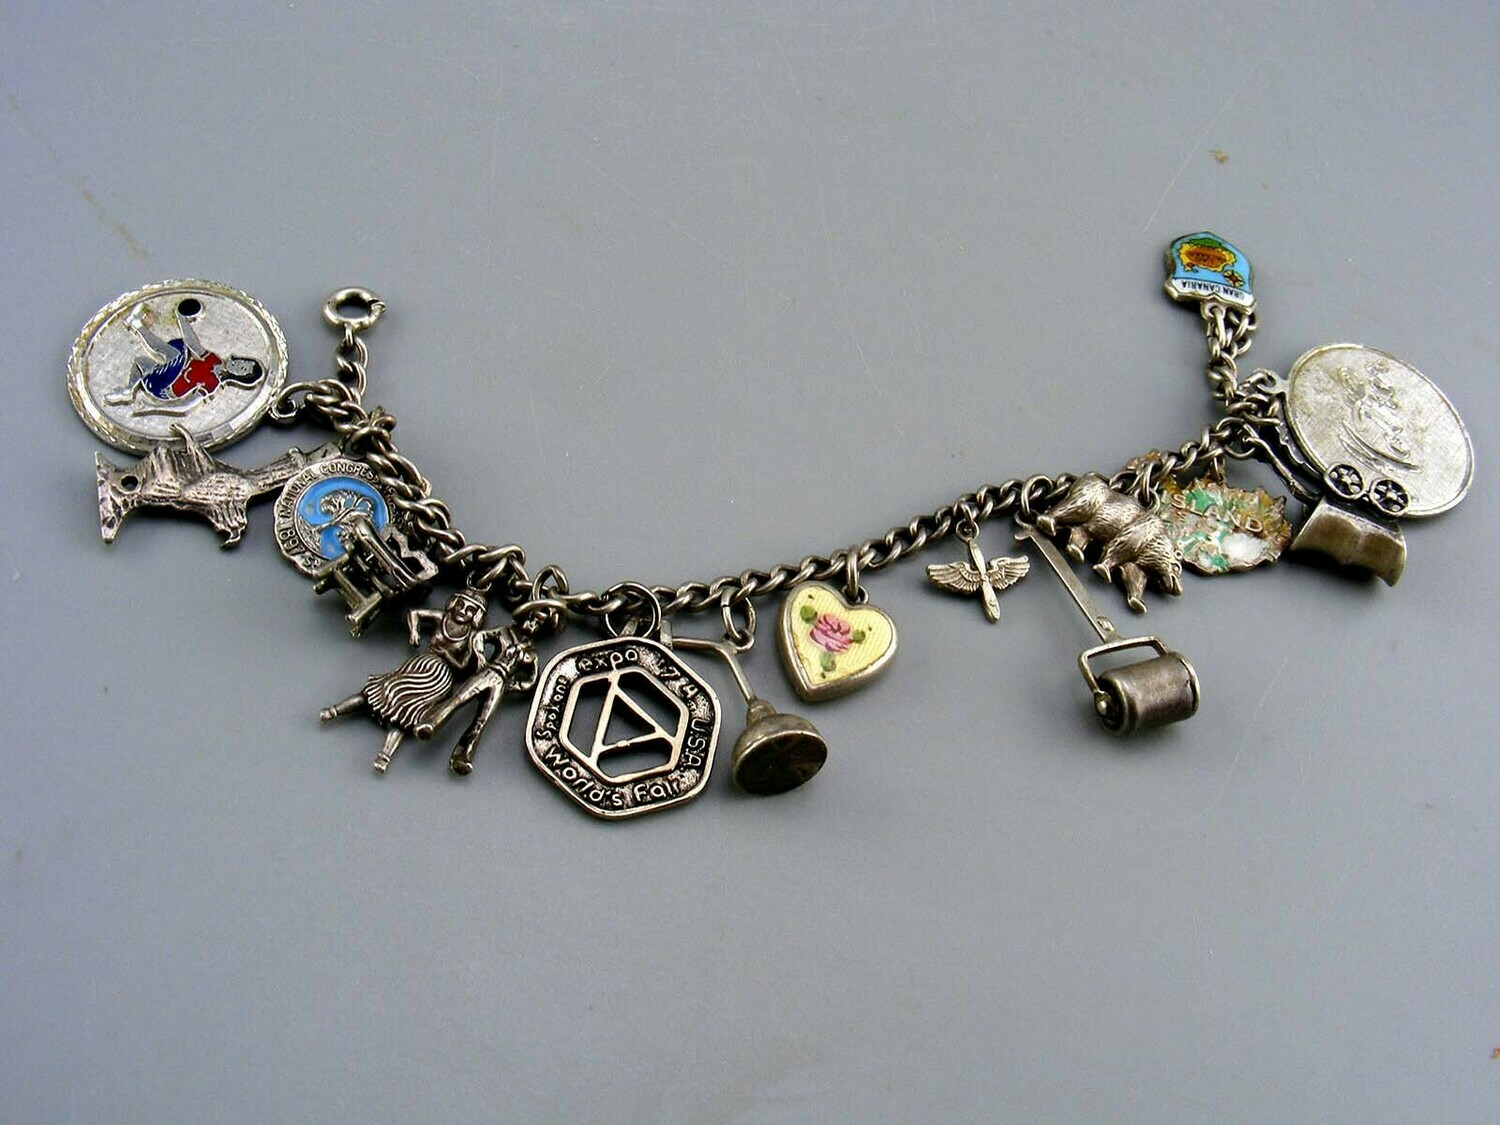 Vintage Sterling Silver Bracelet with 17 charms